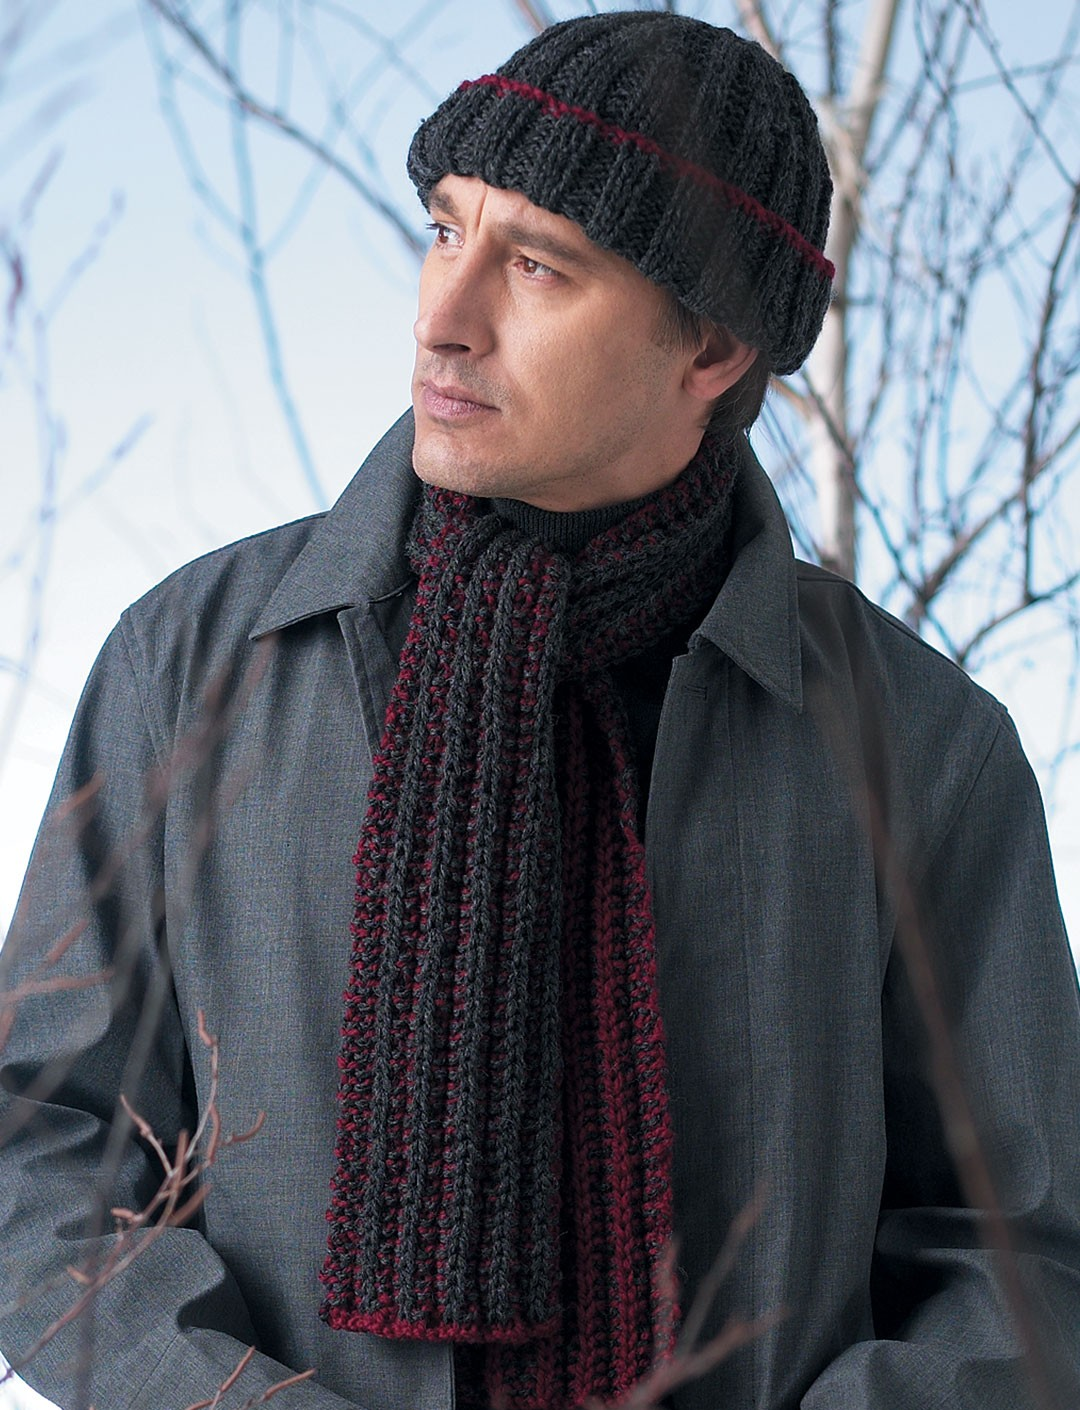 Knitting Patterns For Men s Hats And Scarves : Easy Rib Hat & Scarf - Patterns Yarnspirations